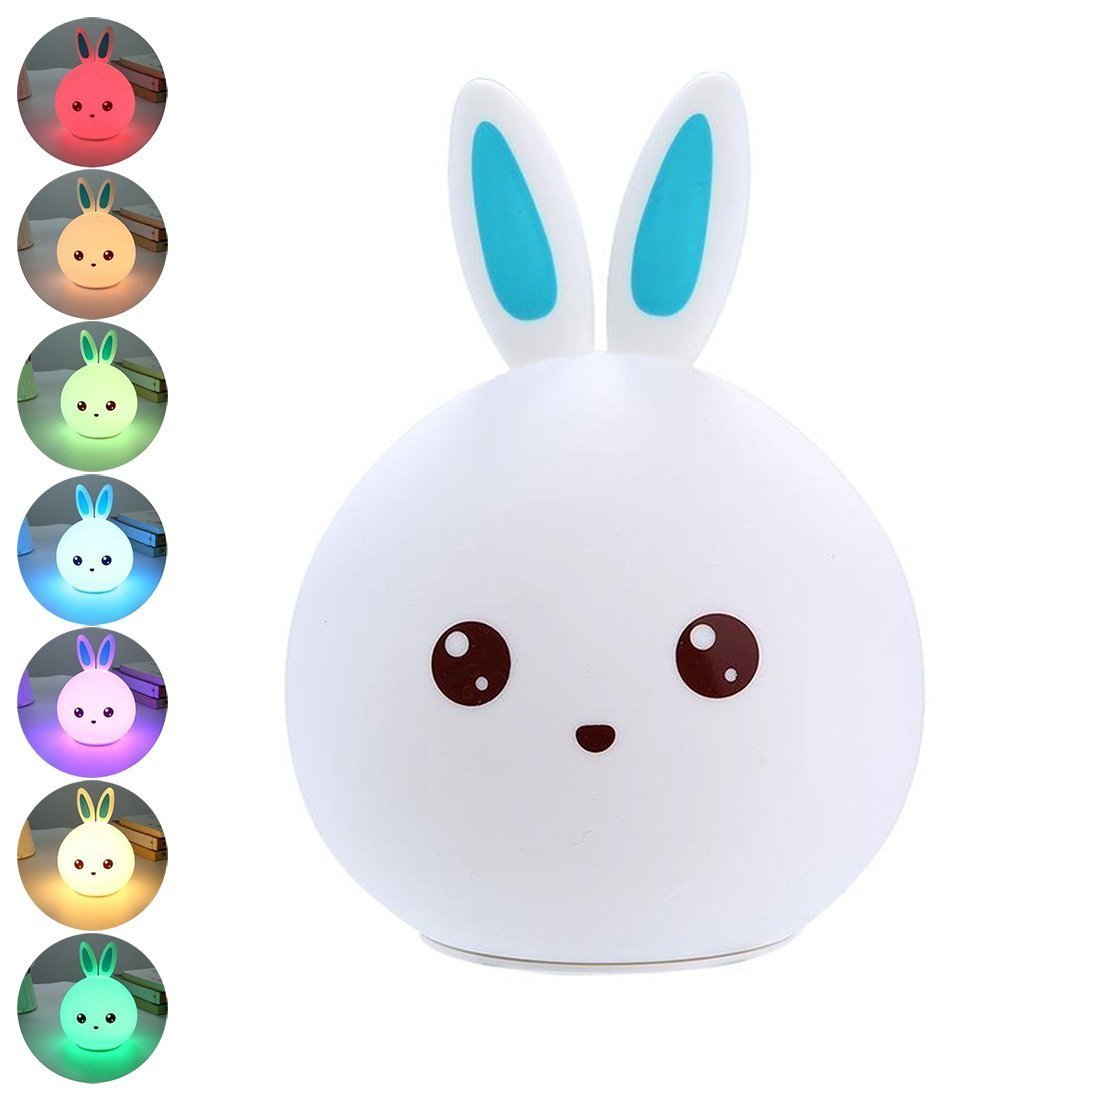 LED Silicone Rabbit Night Light Cute Soft Multicolor Touch Sensor Tap Control Baby USB Rechargeable Nursery Lamp Kid Bedside Toy lumiparty touch cute dolphin usb rechargeable children night light baby whale multicolor led light silicone pat lamp bedside